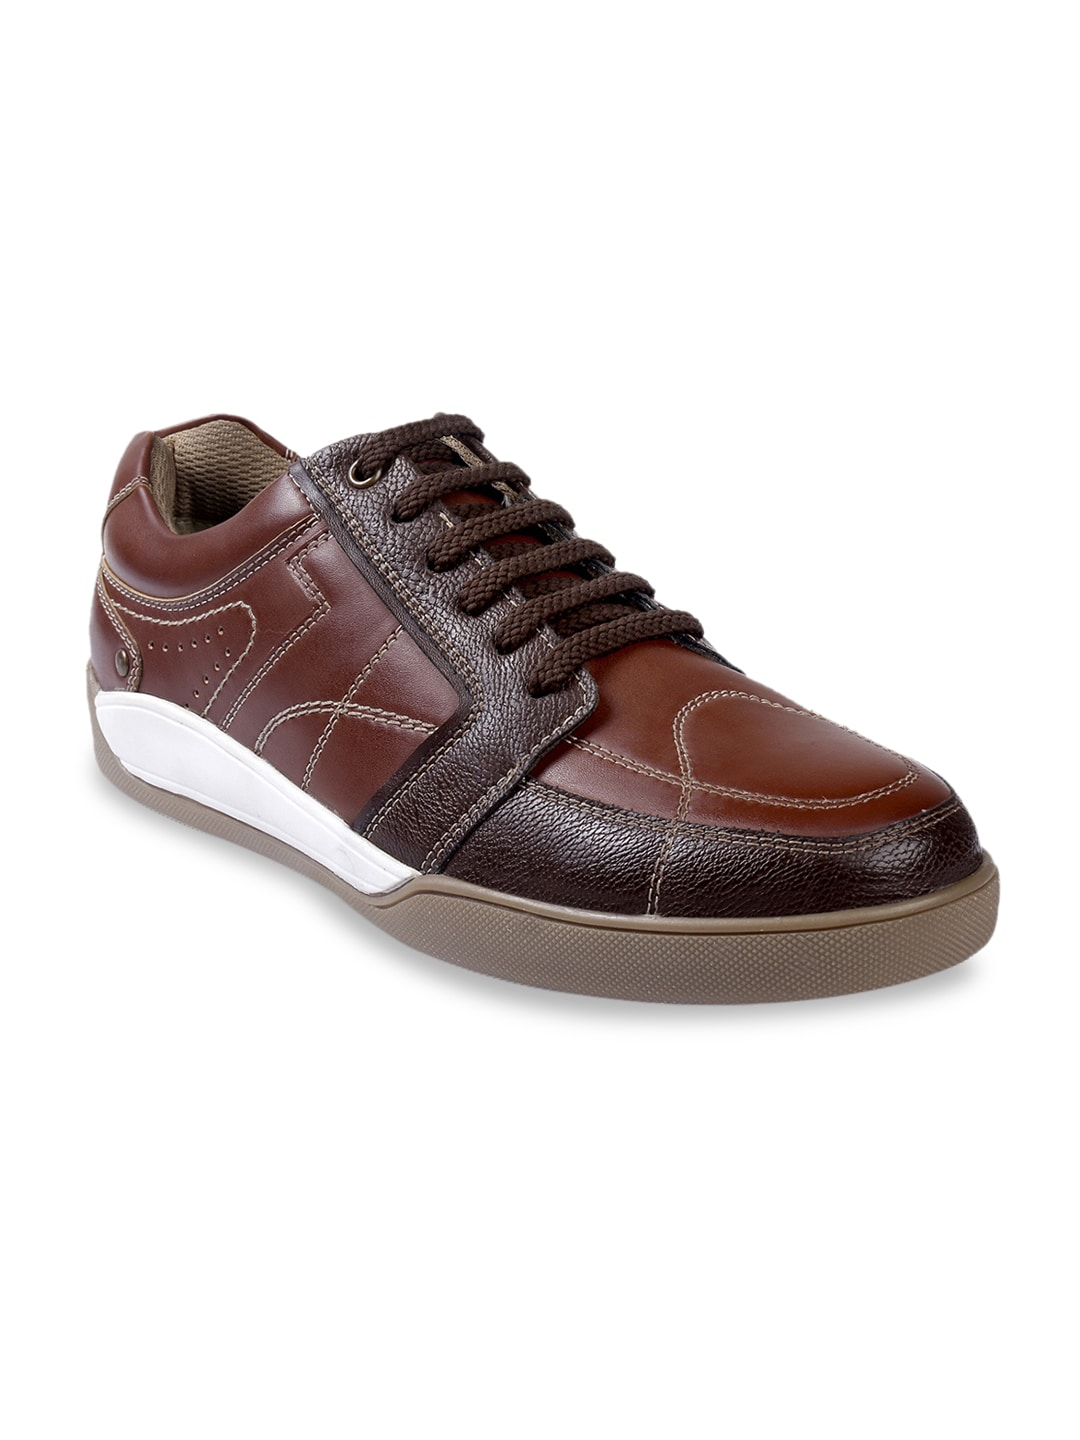 363352fb41f0 Bacca Bucci Shoes - Bacca Bucci Shoes Online in India